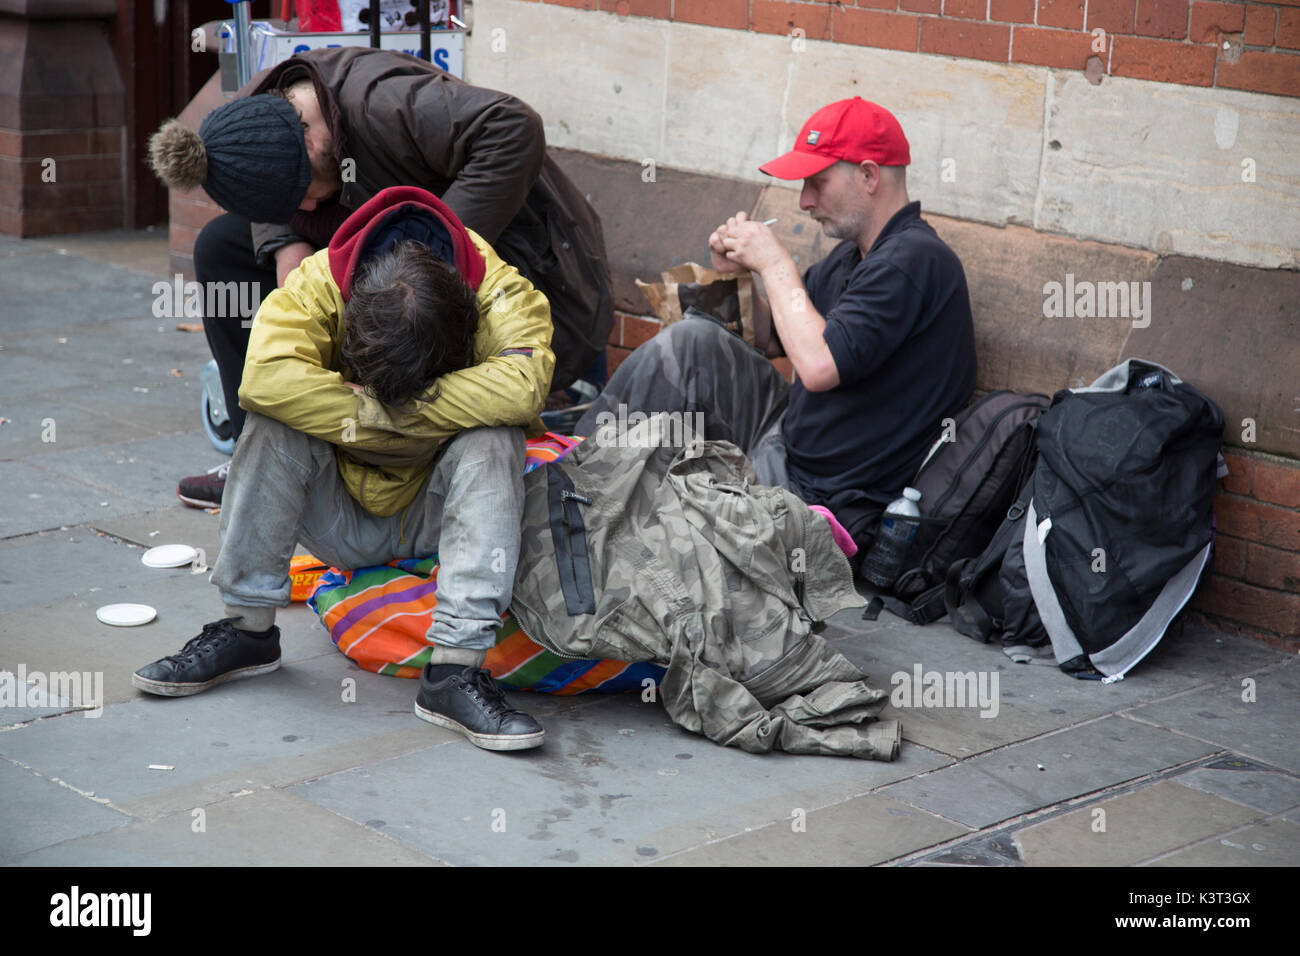 A group of three homeless men sitting on the pavement in London, United Kingdom - Stock Image